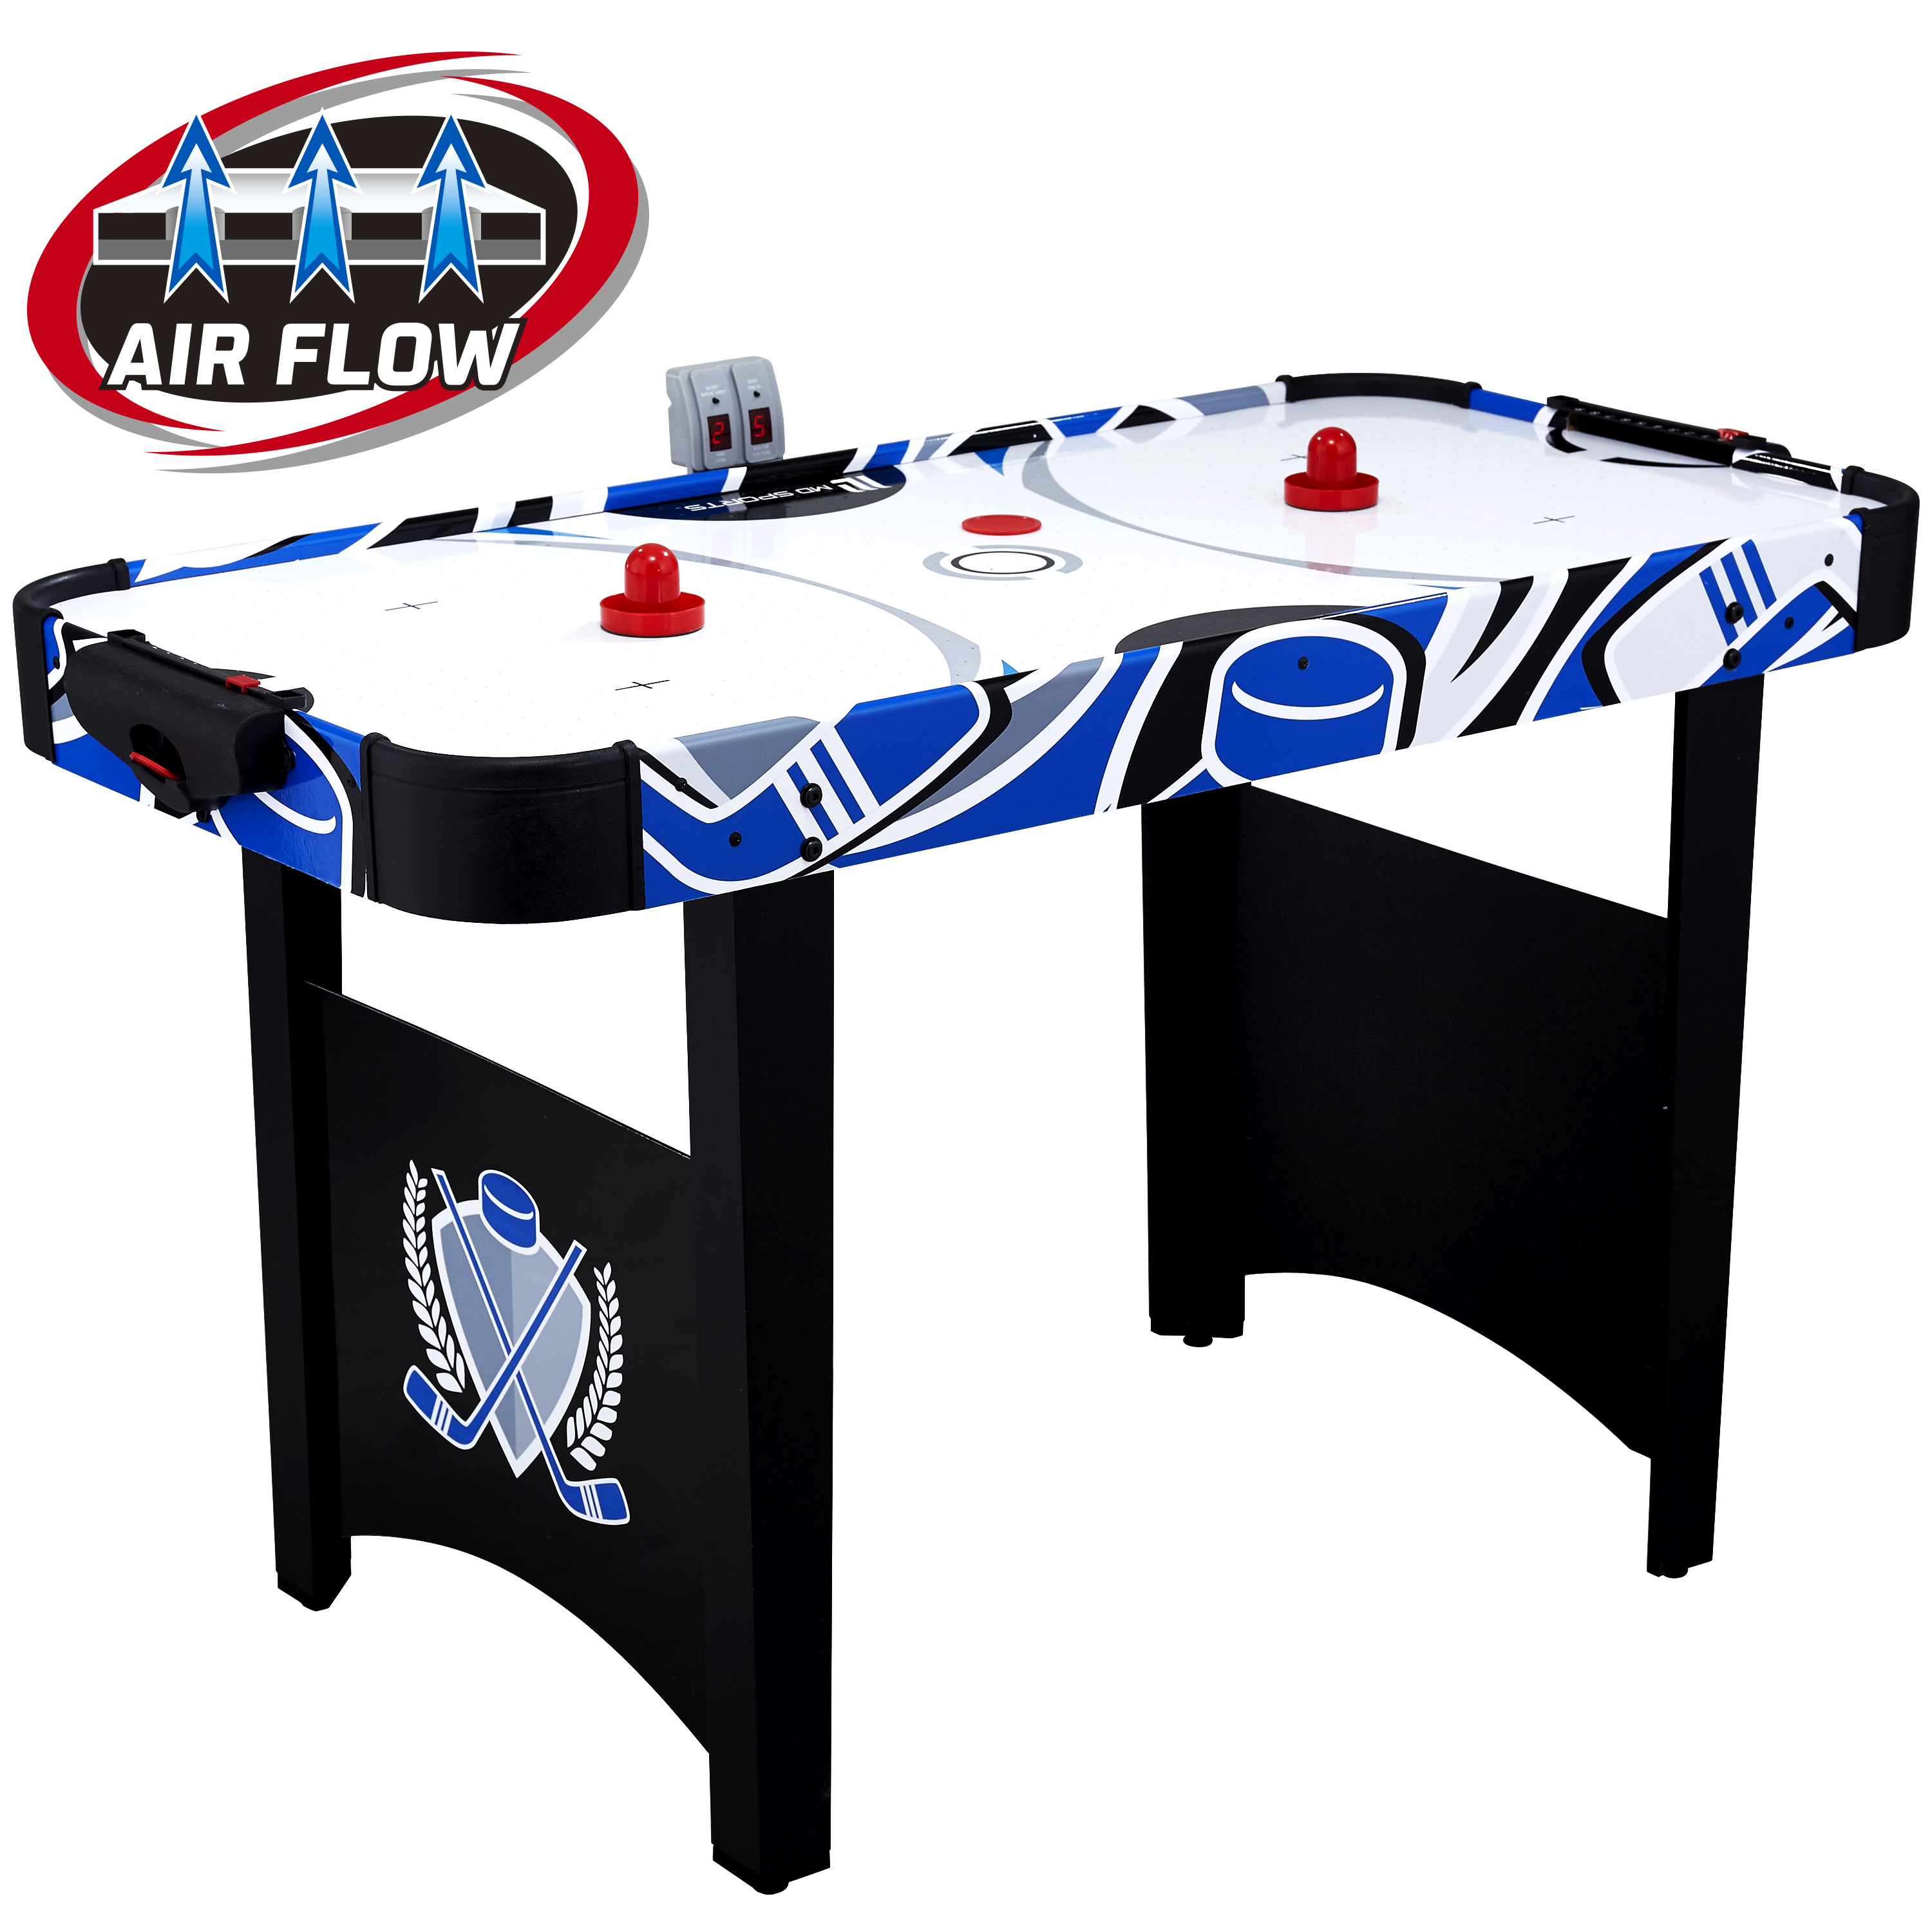 "Click here to buy MD Sports 48"" Air Powered Hockey Table, LED scorer, Accessories included, Black Blue by Medal Sports."